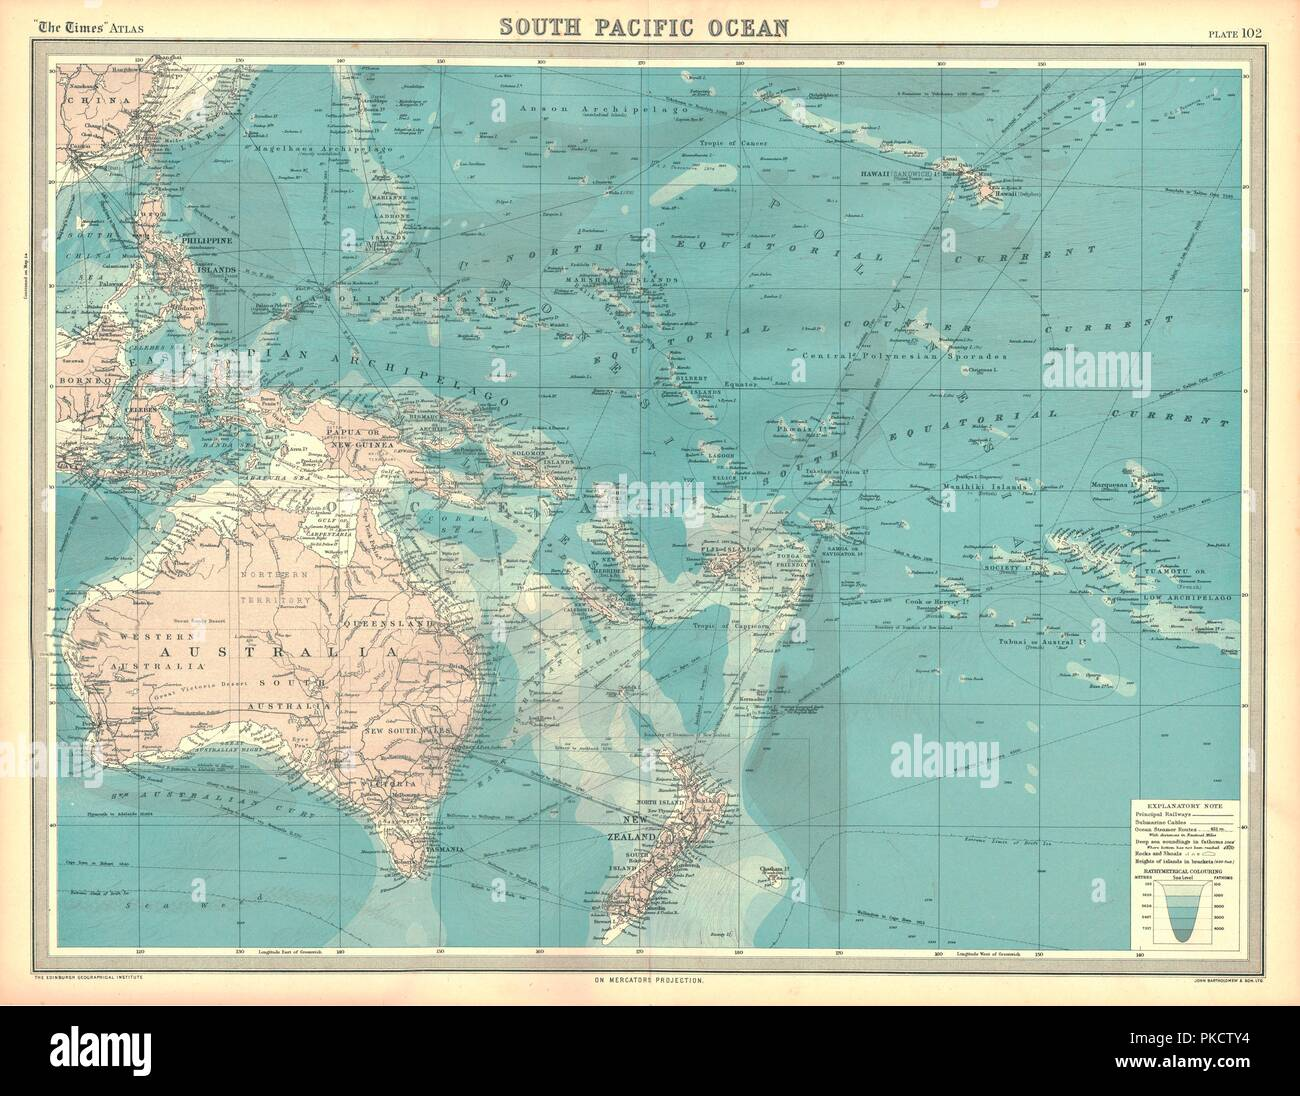 Australia Map New Zealand.Map Of The South Pacific Ocean Map Showing The Philippines